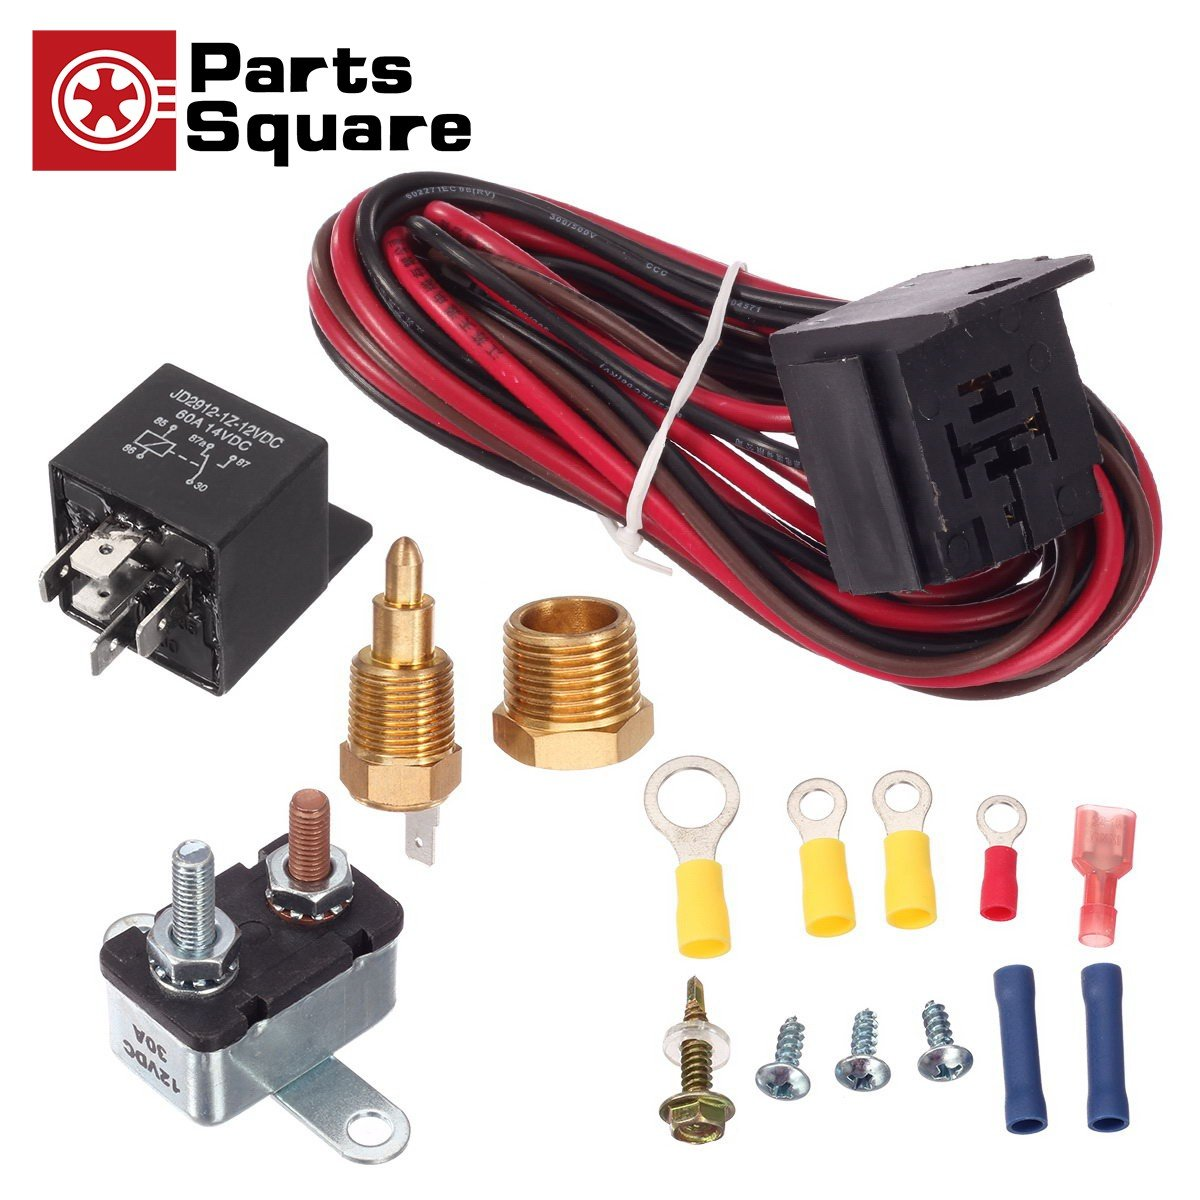 Partssquare 185 To 200 Degree Electric Fan Thermostat Parts Diagram Engine Car And Component Sensor Temperature Switch 50 Amp Relay Kit Automotive